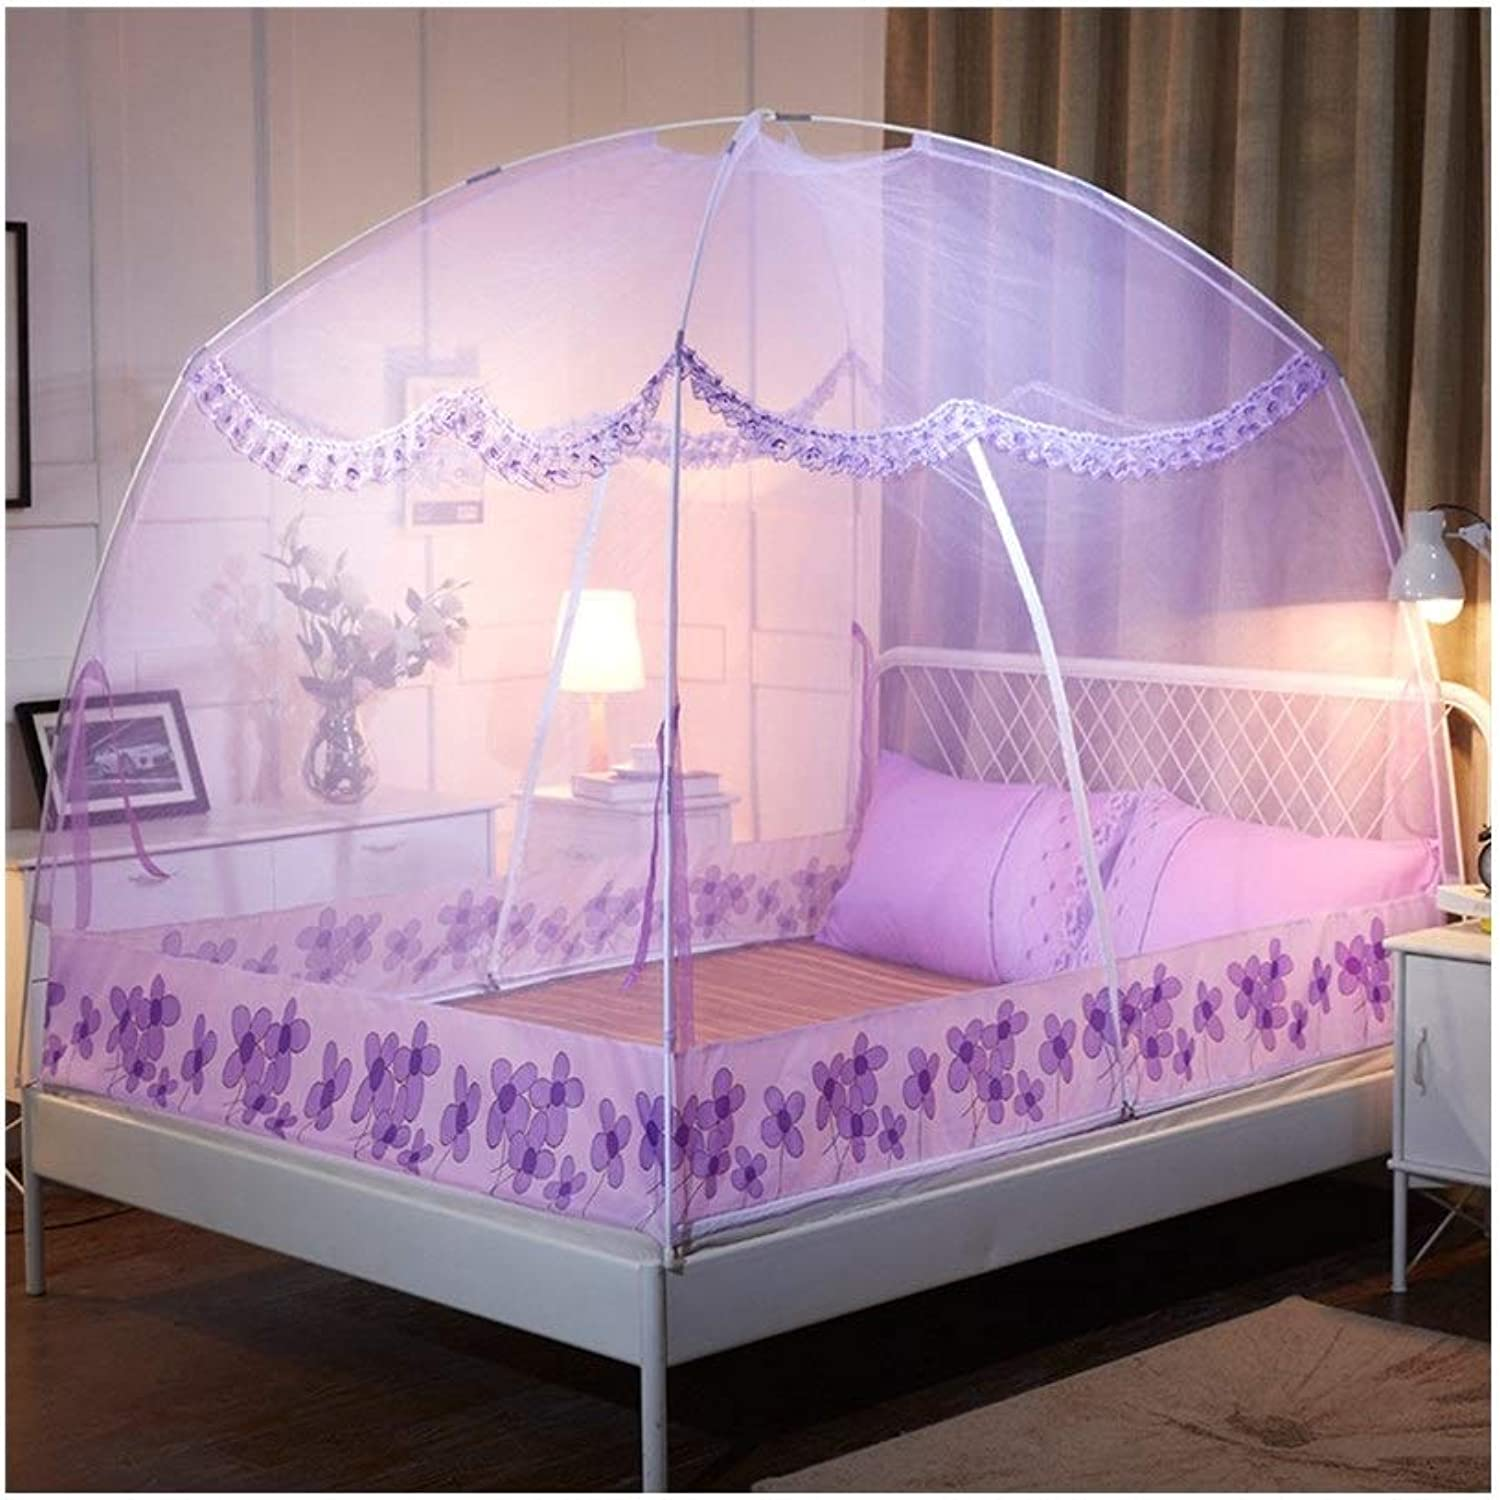 Mongolian yurt Mosquito net Free Inssizetion Double Door Home Tent Bracket encryption Thickening Folding Anti-Fall for 1.5 m Bed 1.8 m Bed (color   Purple, Size   1.8M Bed)